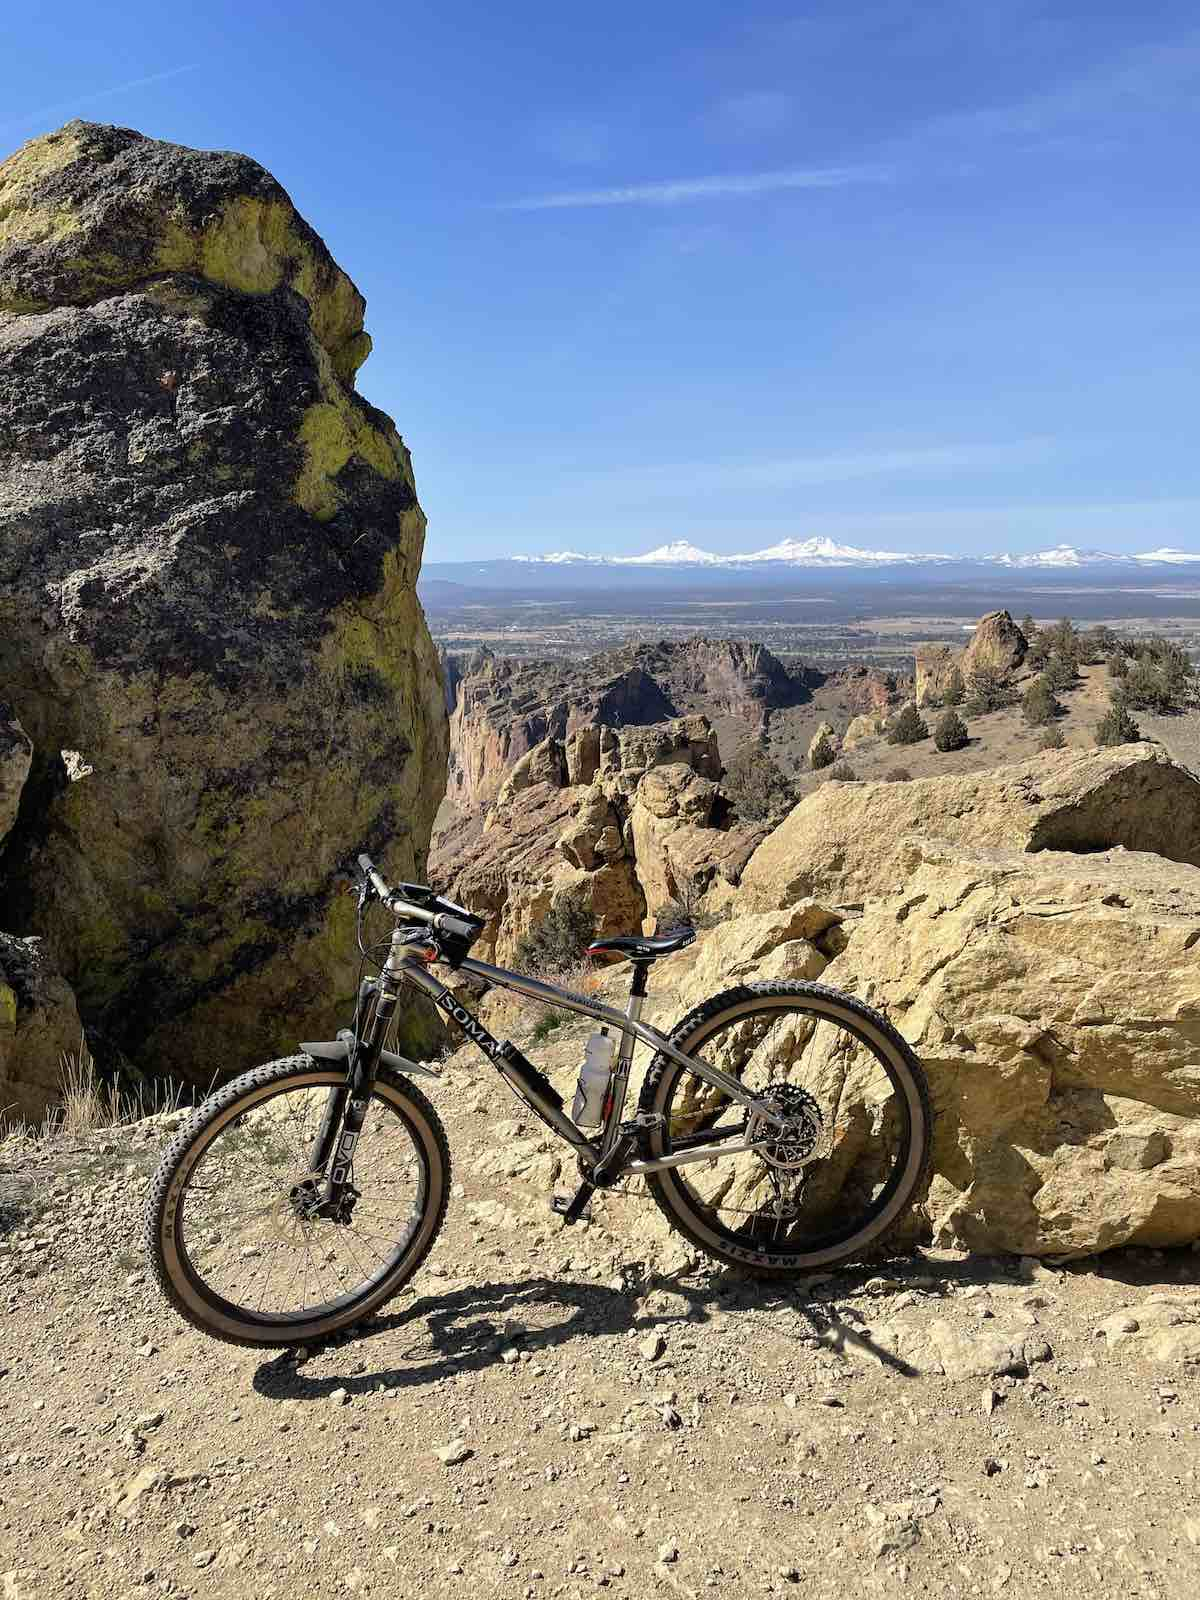 bikerumor pic of the day a mountain bike is posed near a large rock with another larger rock formation to the left of the photo snow capped mountains can be seen in the distance with clear blue skies.